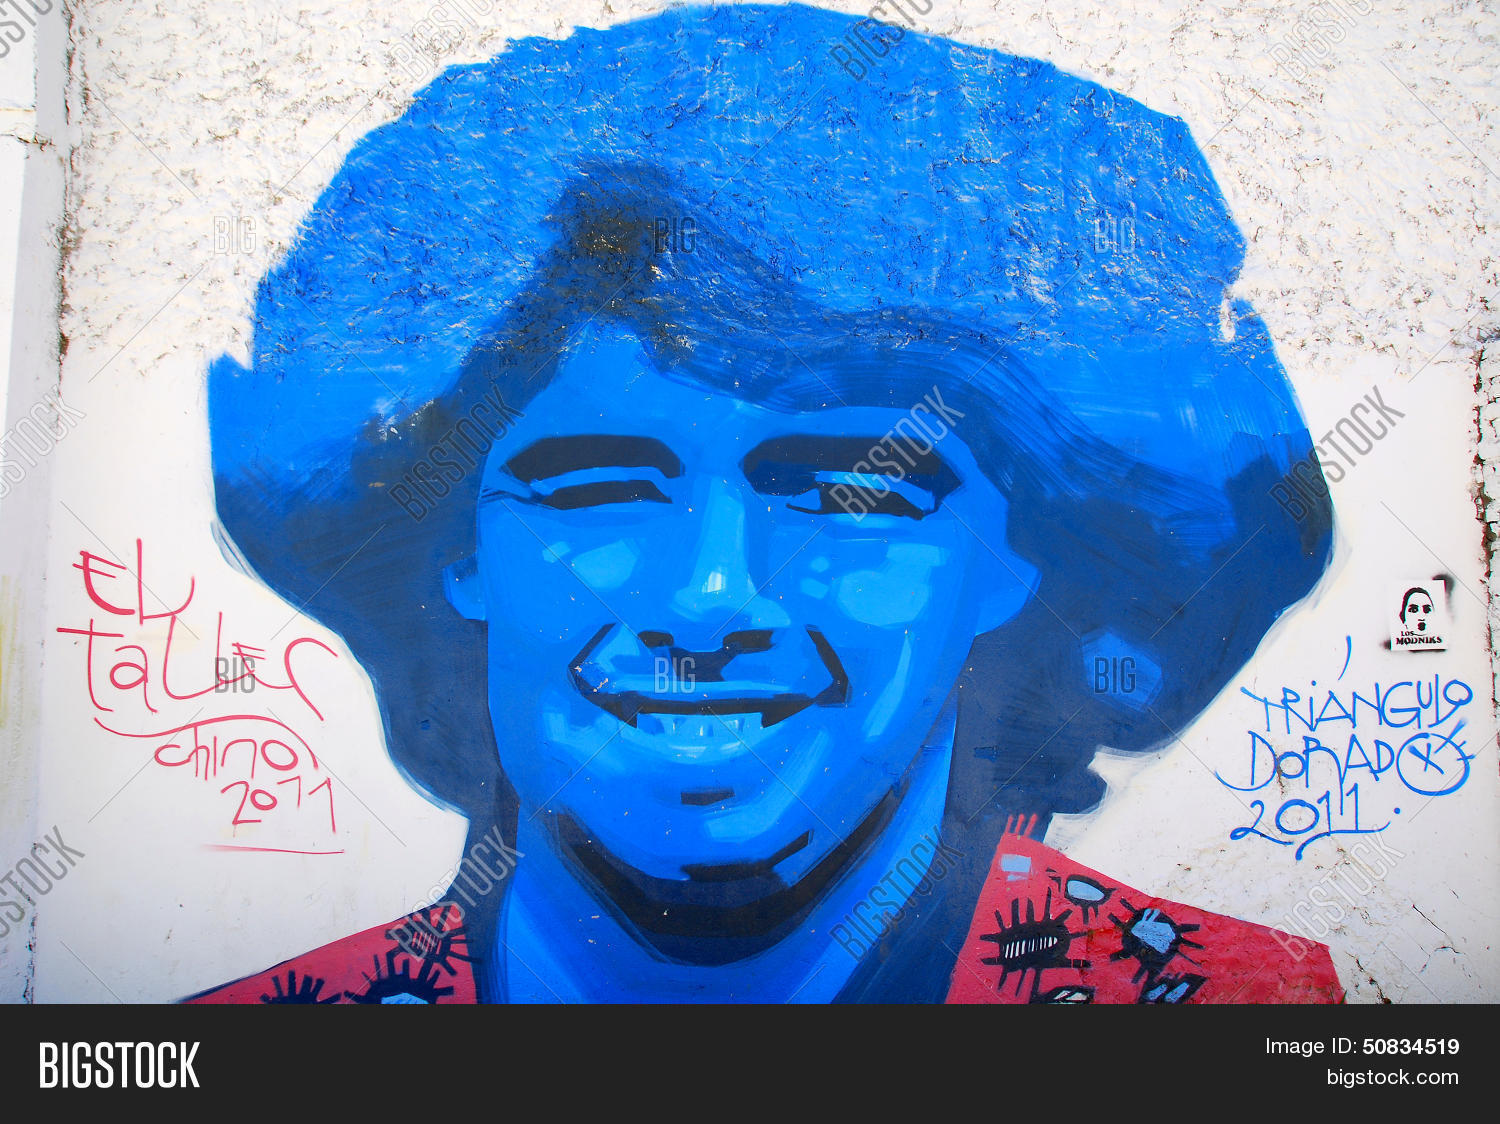 Diego Maradona Image Photo Free Trial Bigstock